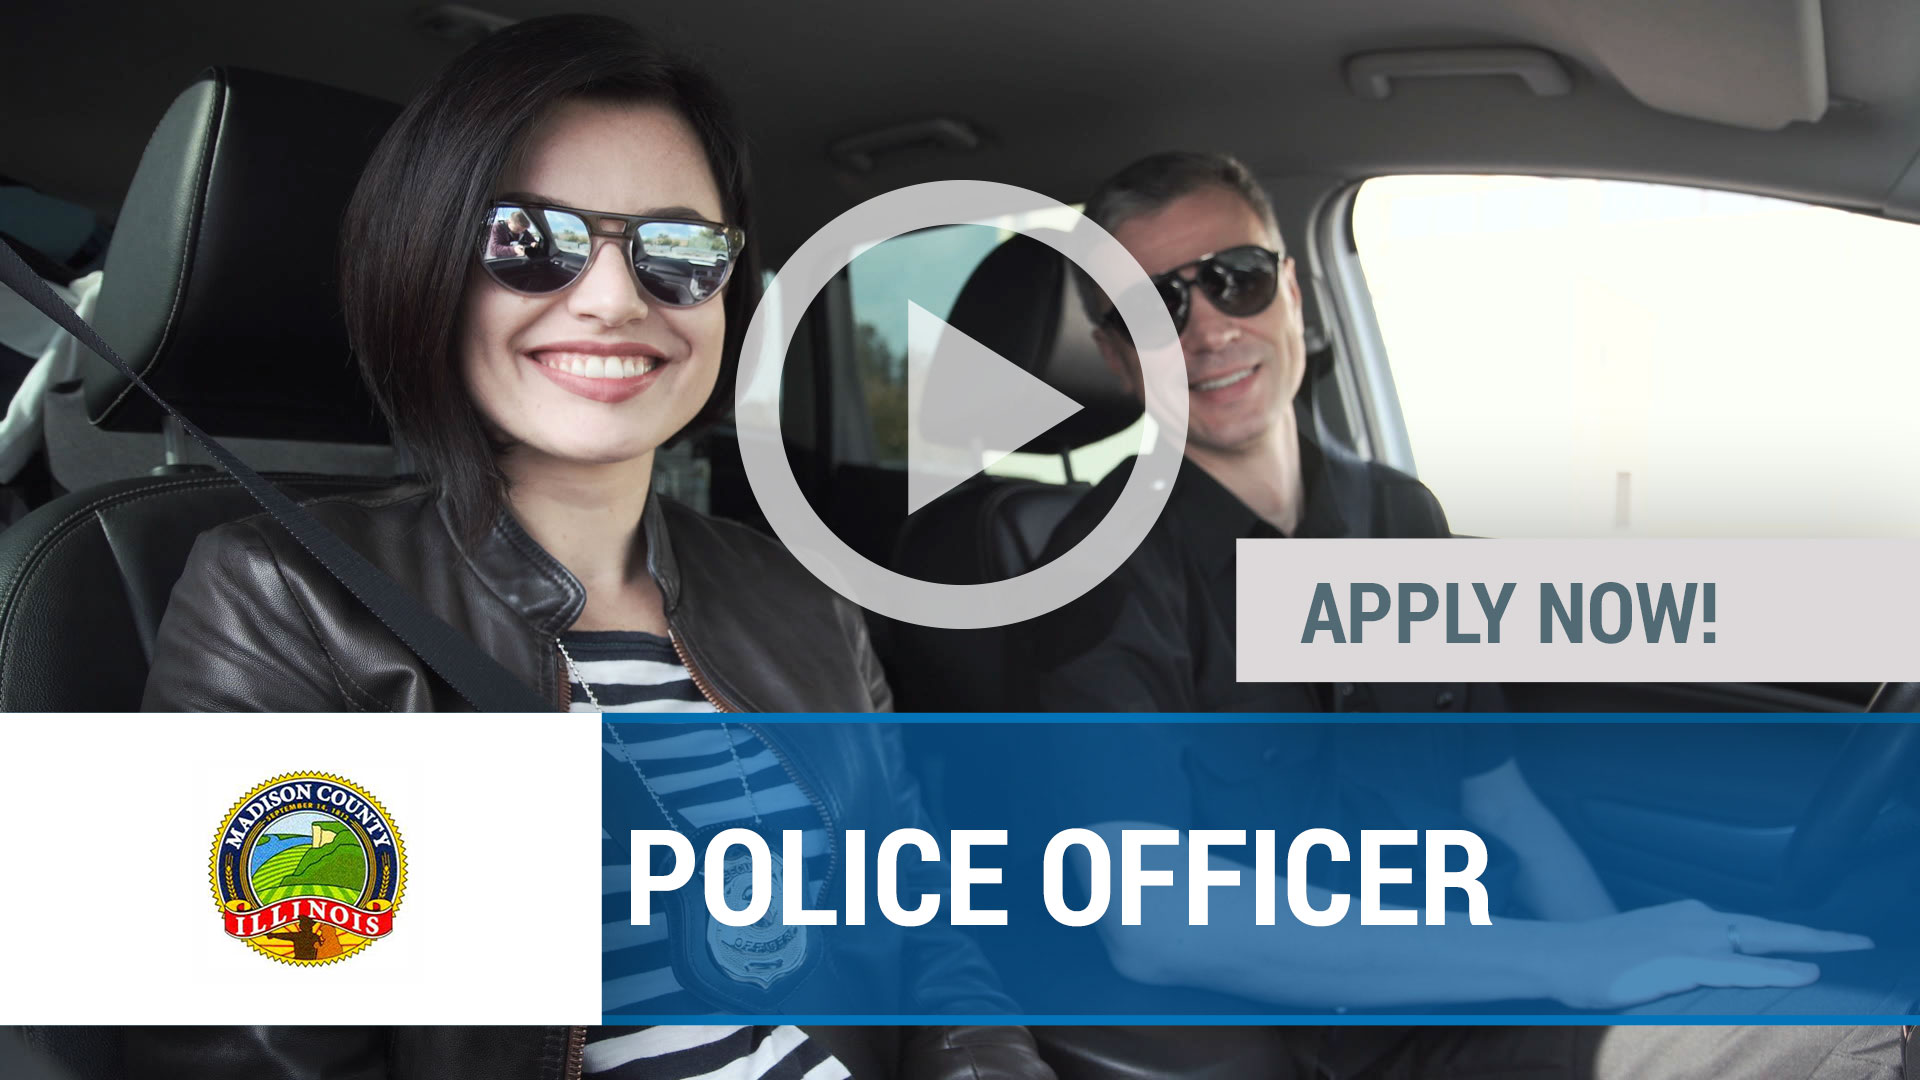 Watch our careers video for available job opening POLICE OFFICER in Madison, IL, USA